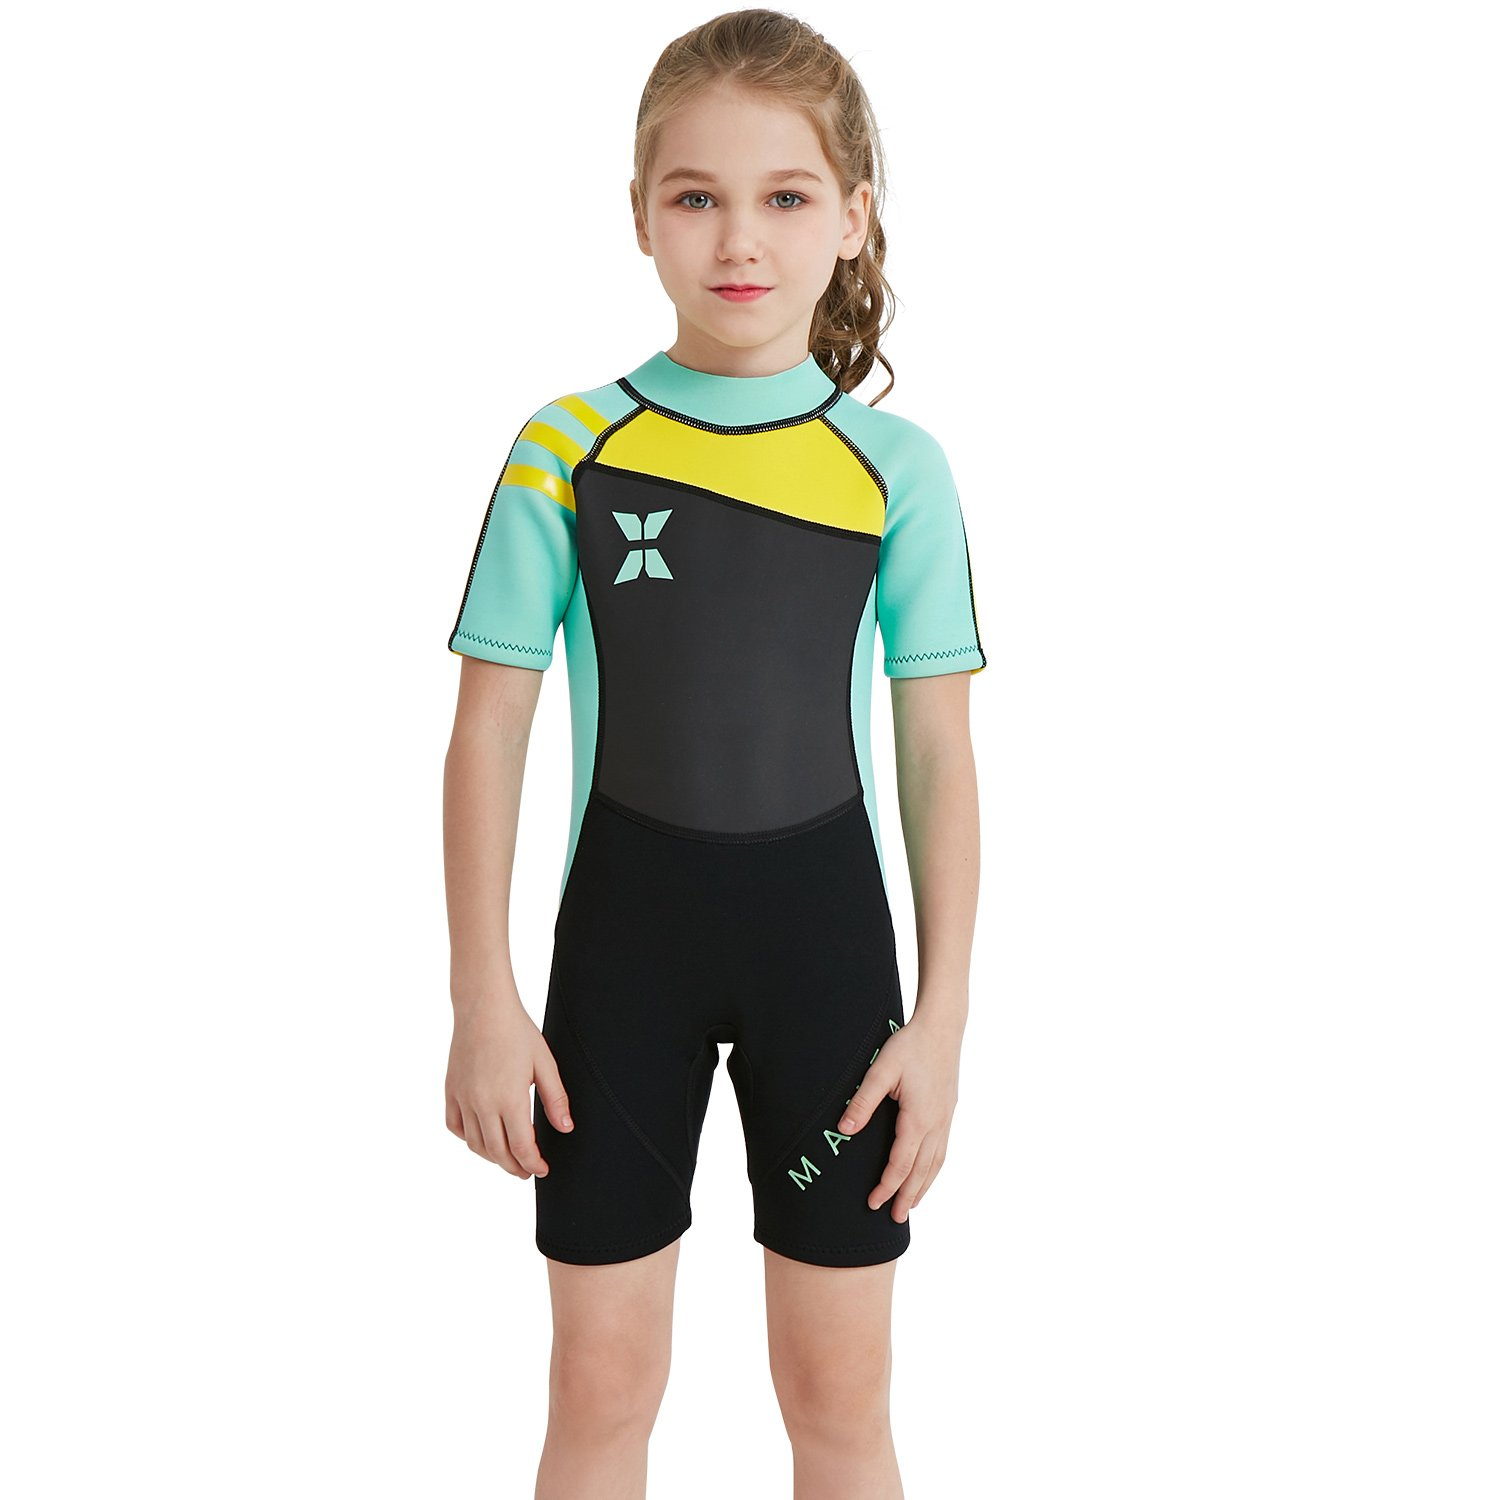 dark lightning 2mm Shorty Wetsuit Kids, Girl's Swimwear Shorty Sleeves, Children's Neoprene Diving/Surfing Swimsuit, Blue Wet Suits, L Size by dark lightning